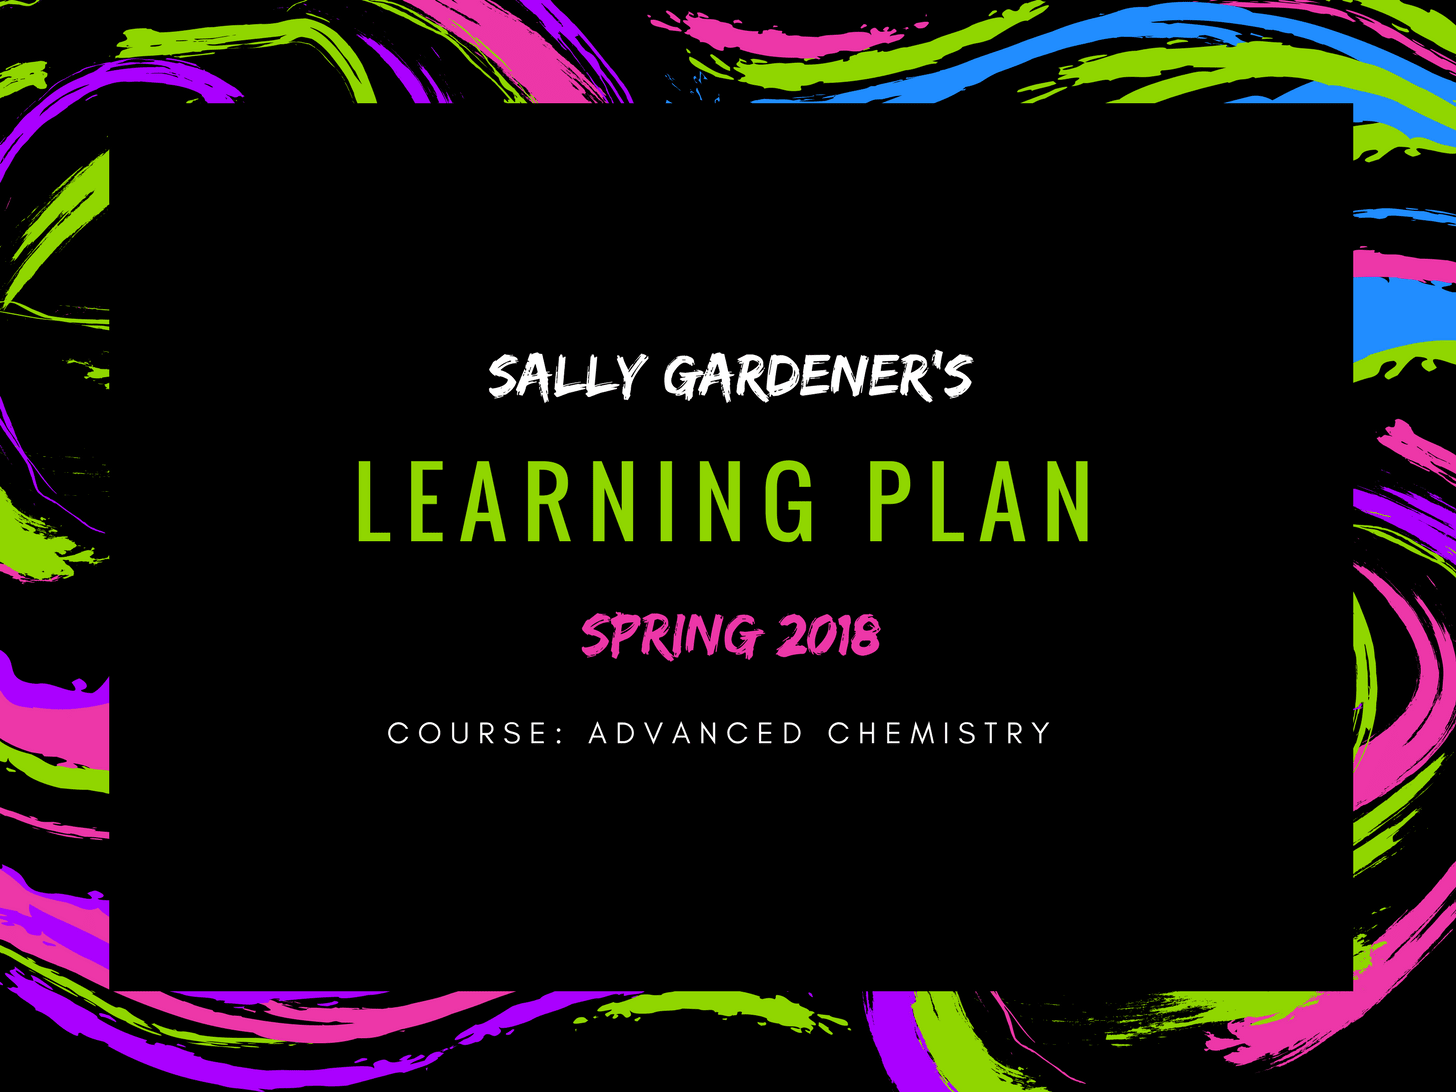 Sally's Learning Plan